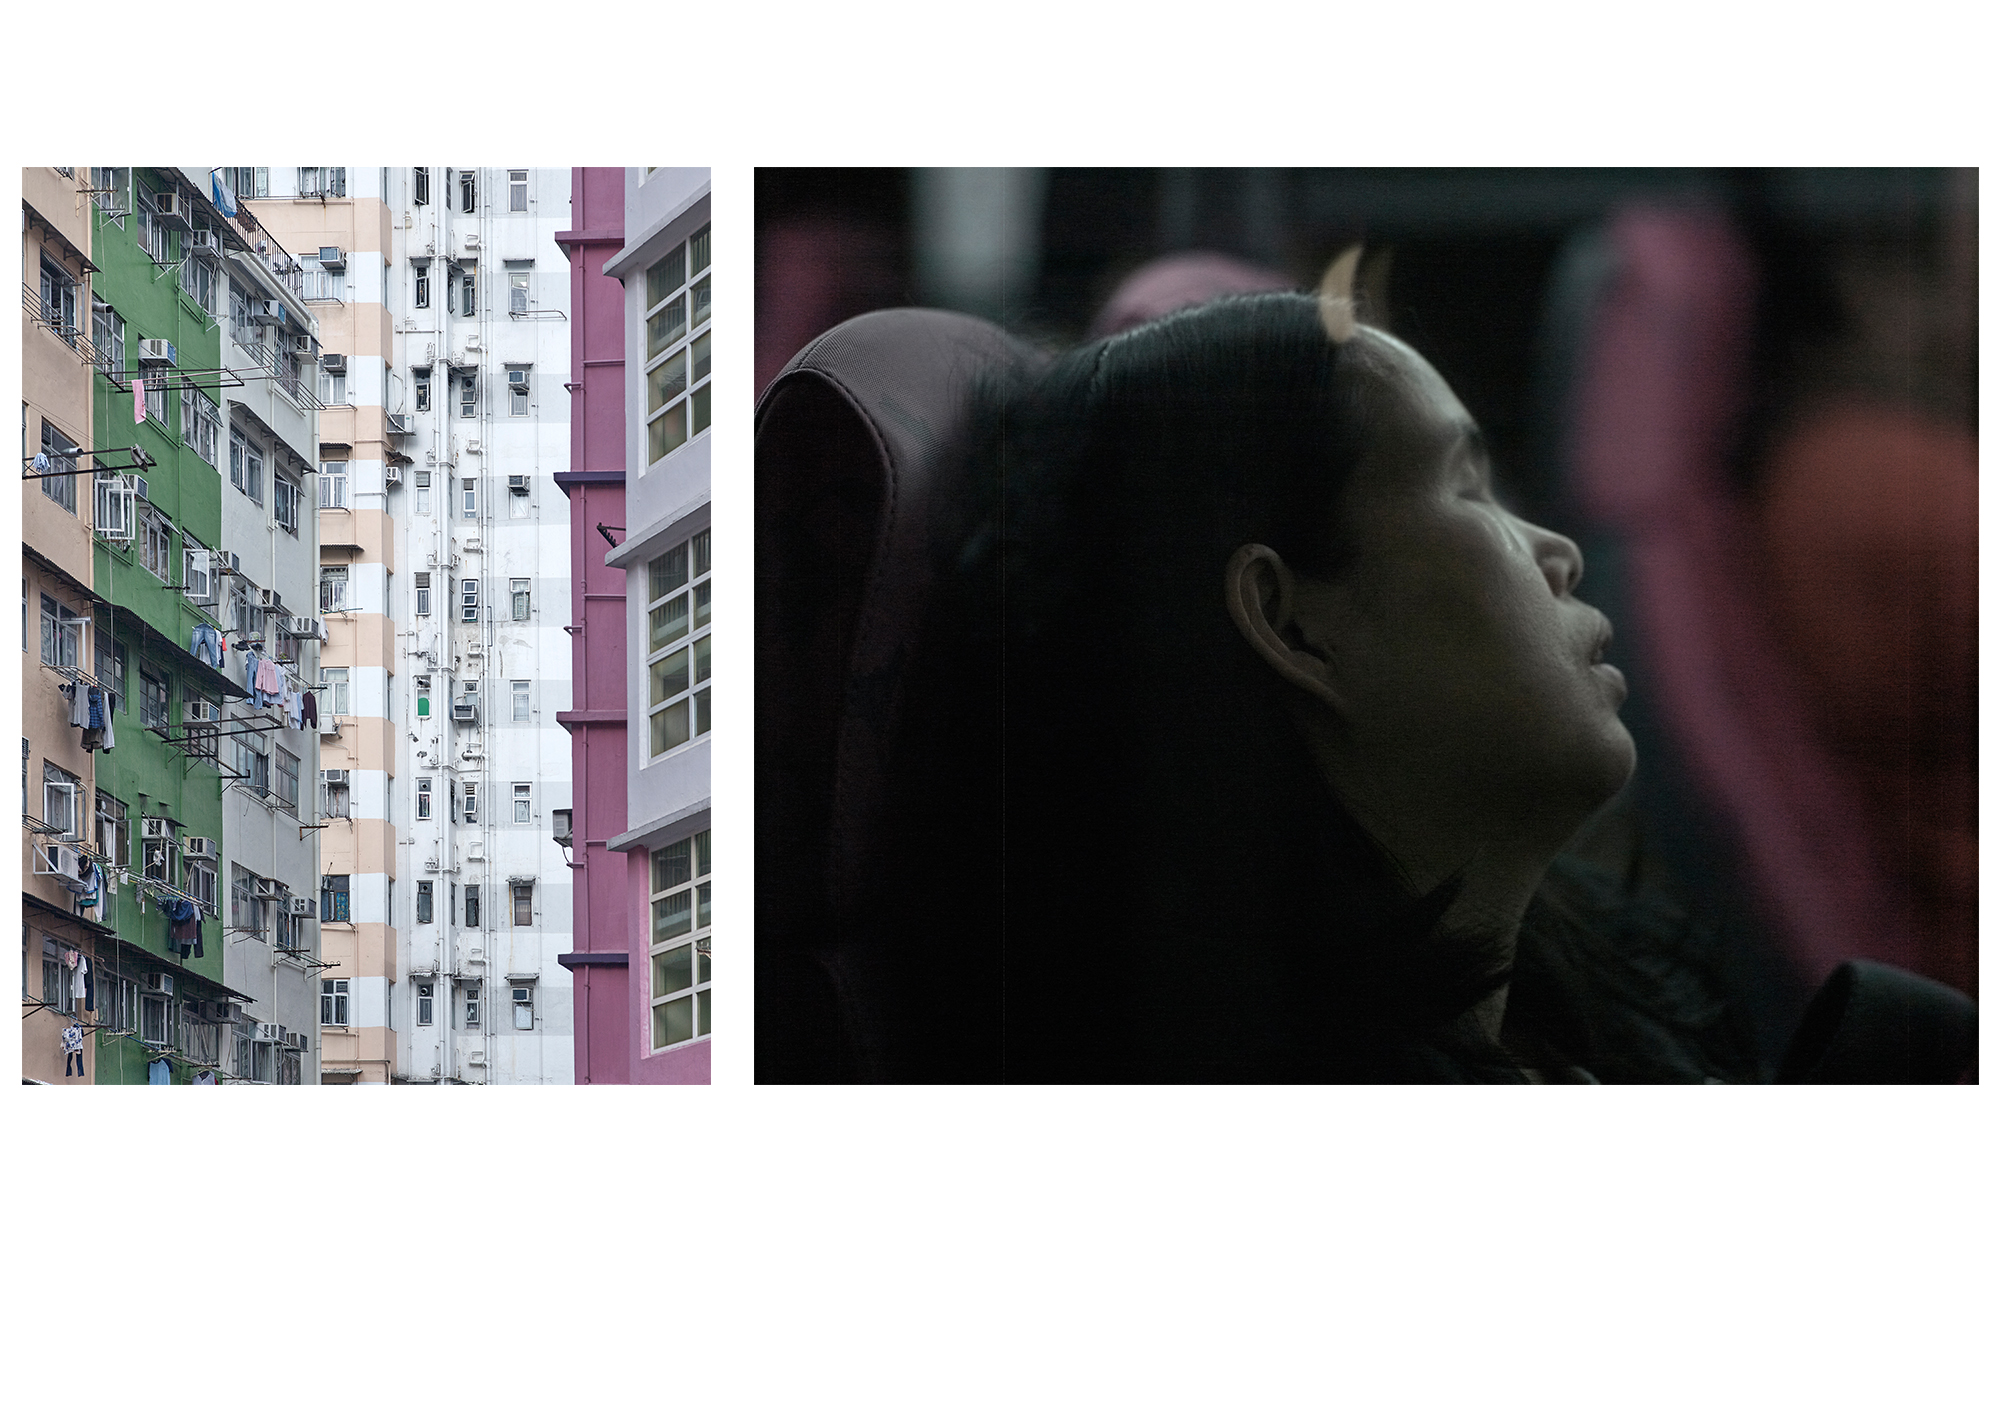 Hong Kong Stillness 11 + 12, 2015, Epson Photo Matt on dibond, oak frame, 45cmx60cm and 80cmx60cm, edition 1/7 + 1 AP